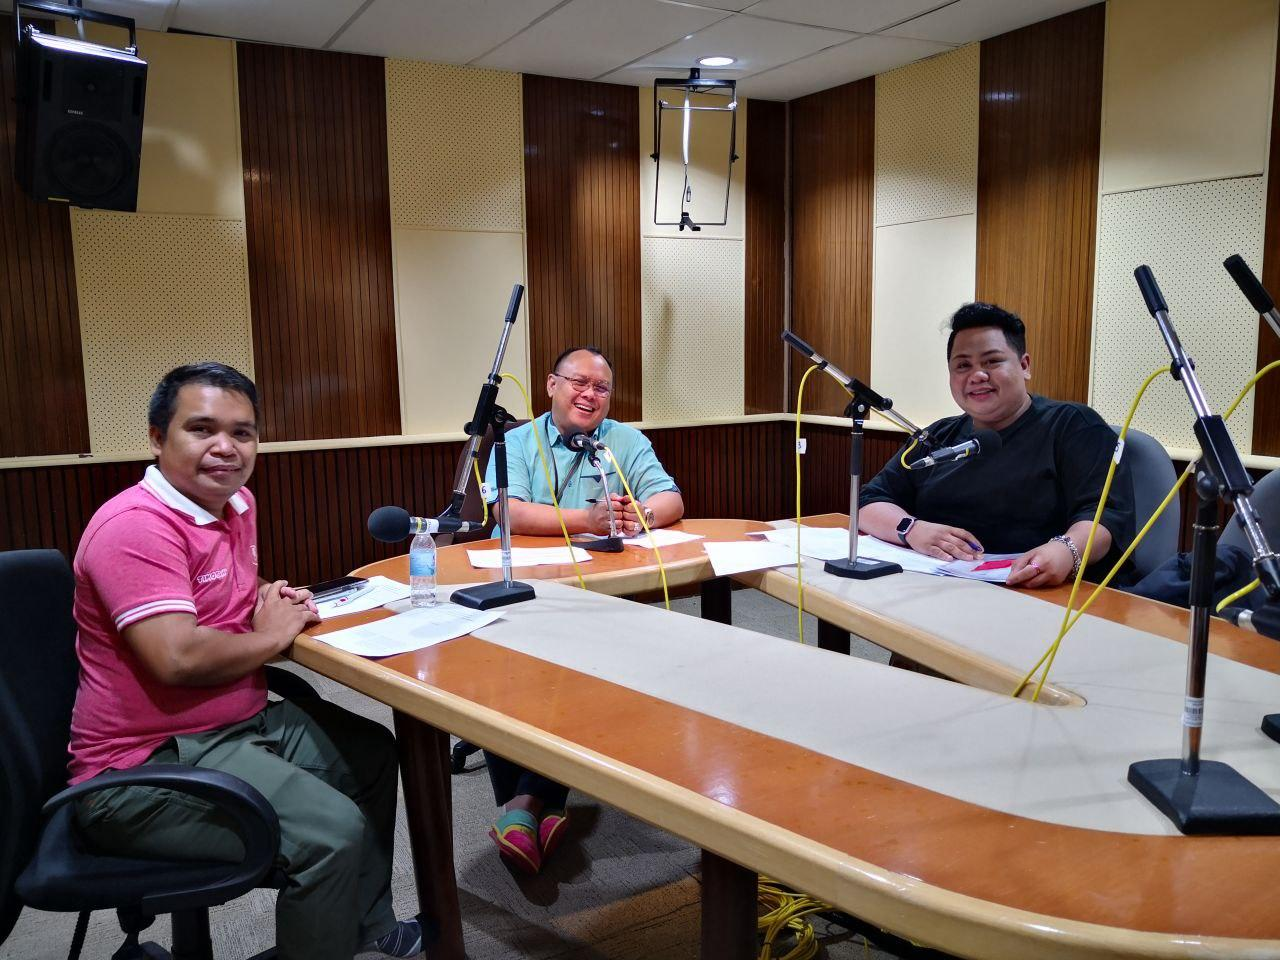 (From left) Agropreneur Heineken Laluan and founder of Timogah.com with Sarawak FM deejay Azman Johari and Hassnal Hakim Junaidi (AZAM Sarawak Communication Officer) during a recent Sembang Digital Normal Baru radio programme organised by SMA and AZAM Sarawak on e-commerce.